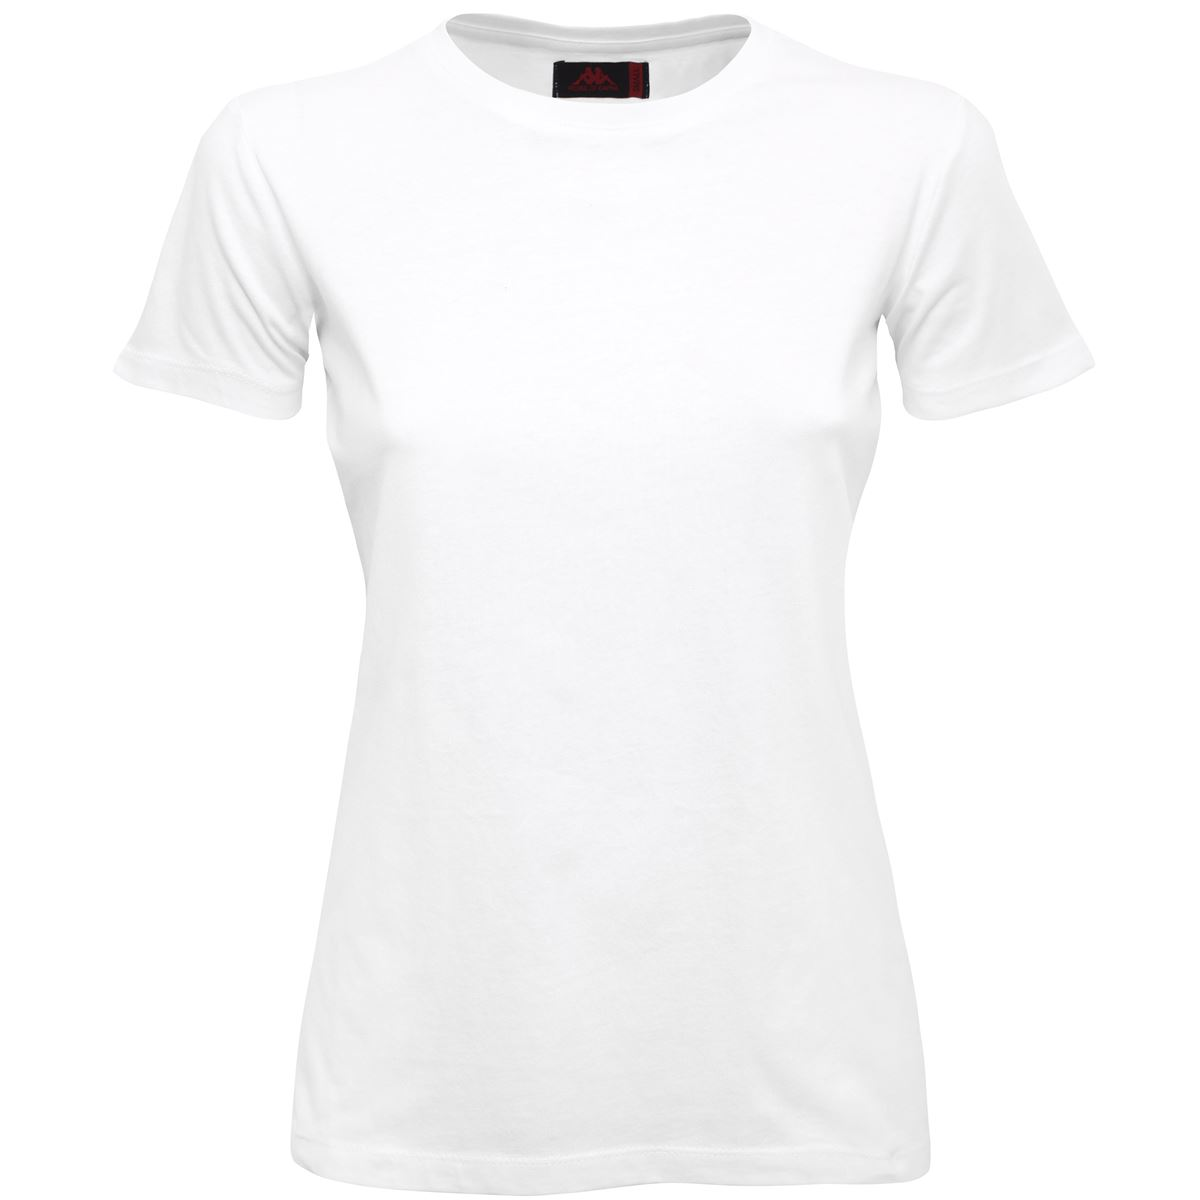 Robe di Kappa T-shirts & Top donna-601LJJ0